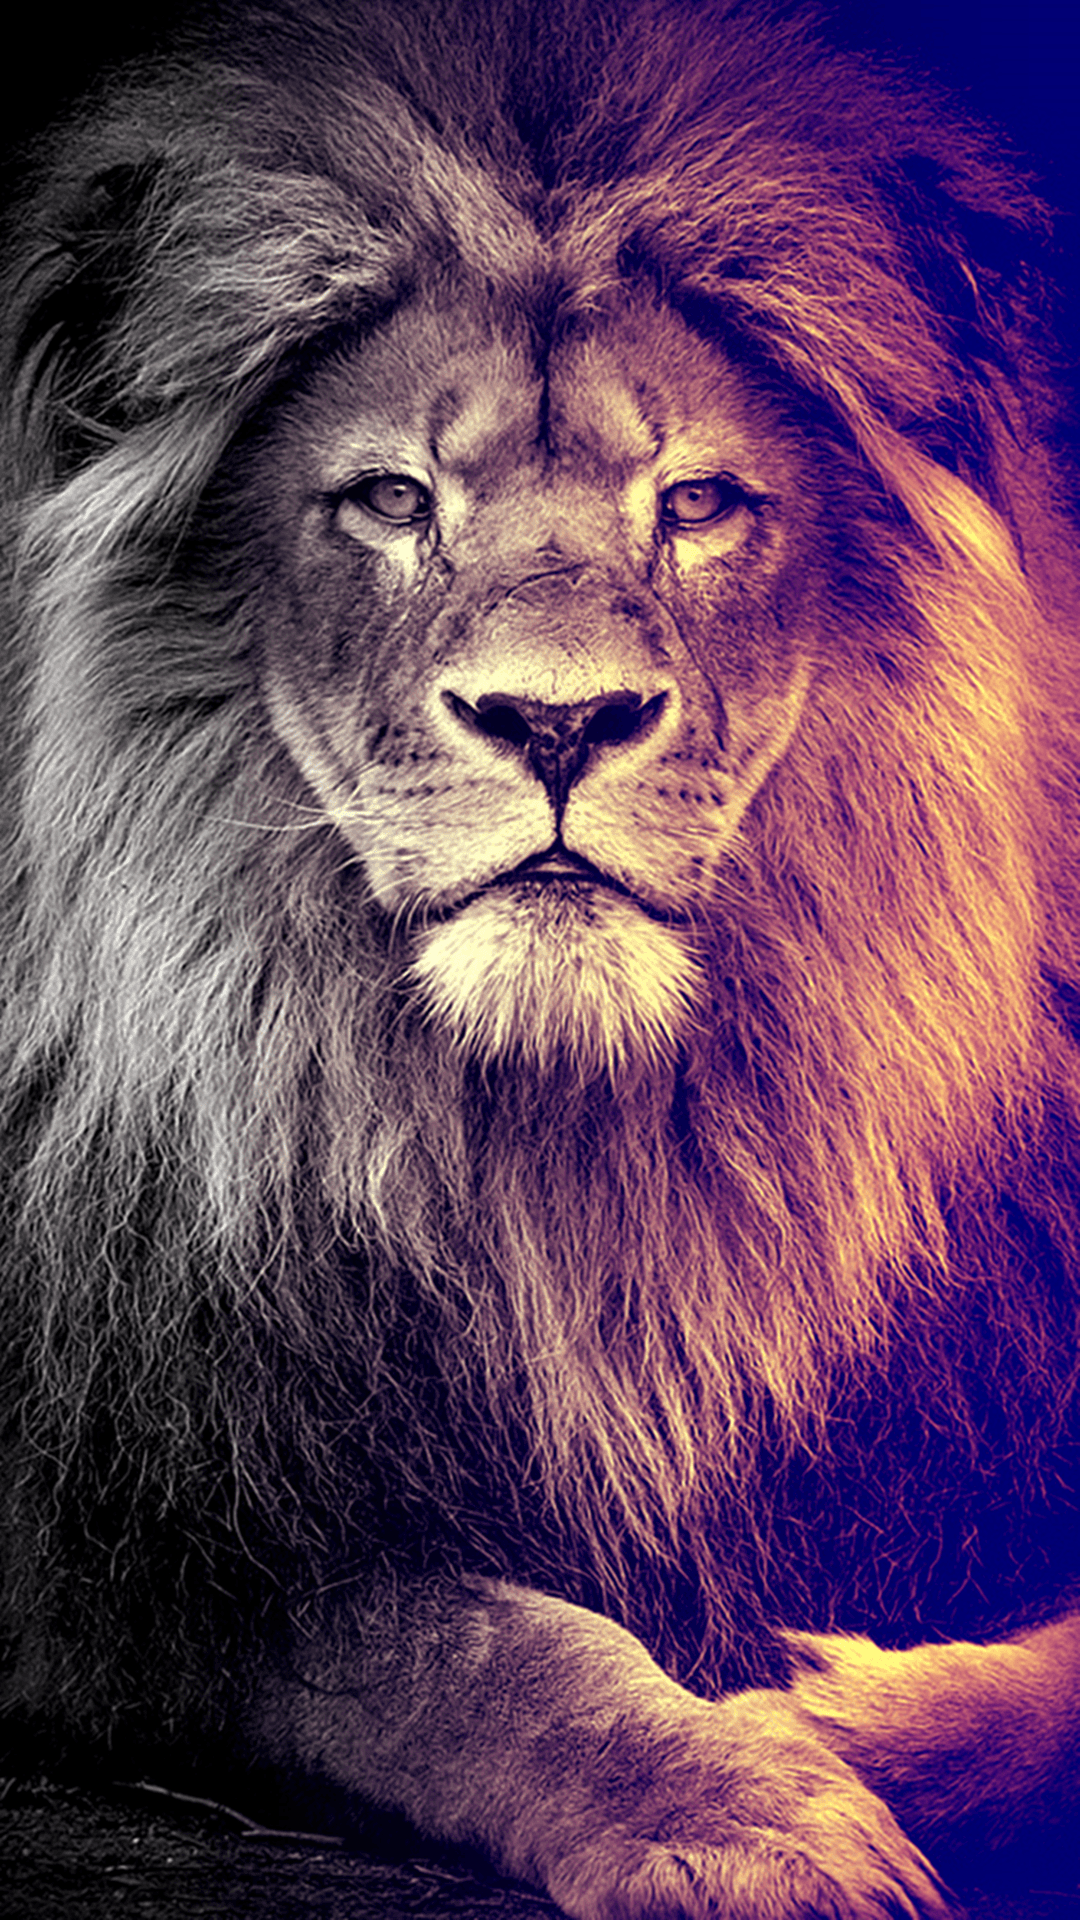 Lion Iphone Android Iphone Desktop Hd Backgrounds Wallpapers 1080p 4k 124887 Hdwallpapers Androidwall Lion Wallpaper Cat Phone Wallpaper Lion Art